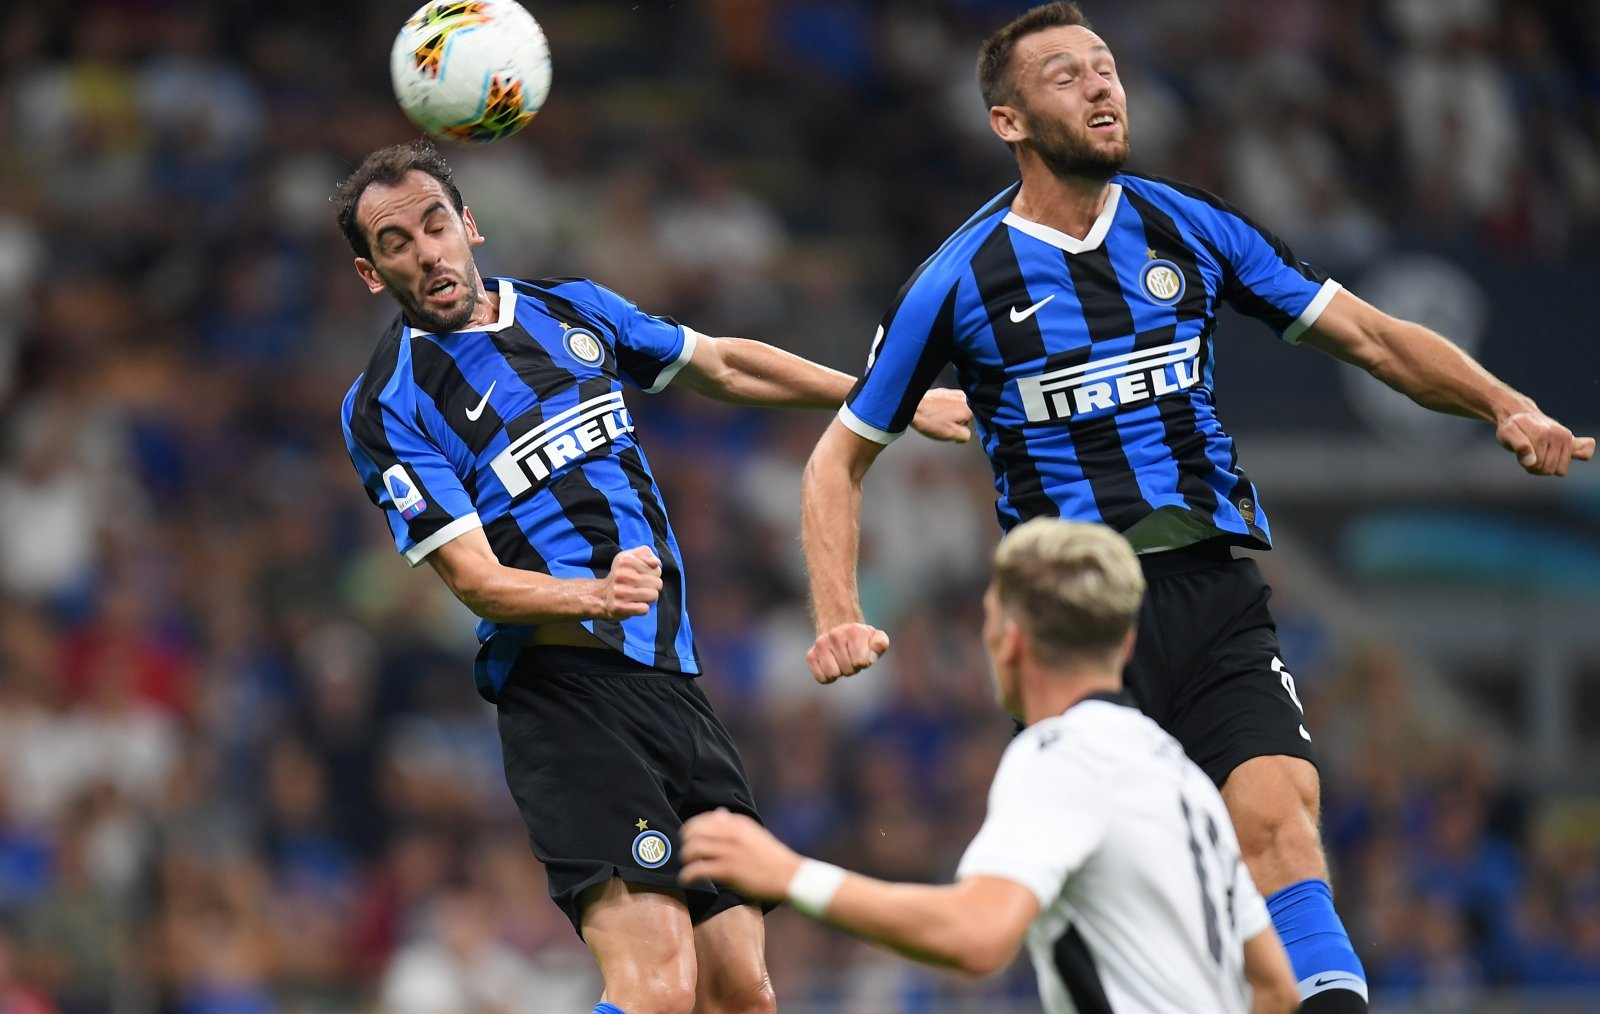 Unsung Hero: Inter's Diego Godin was effective before being forced off through injury